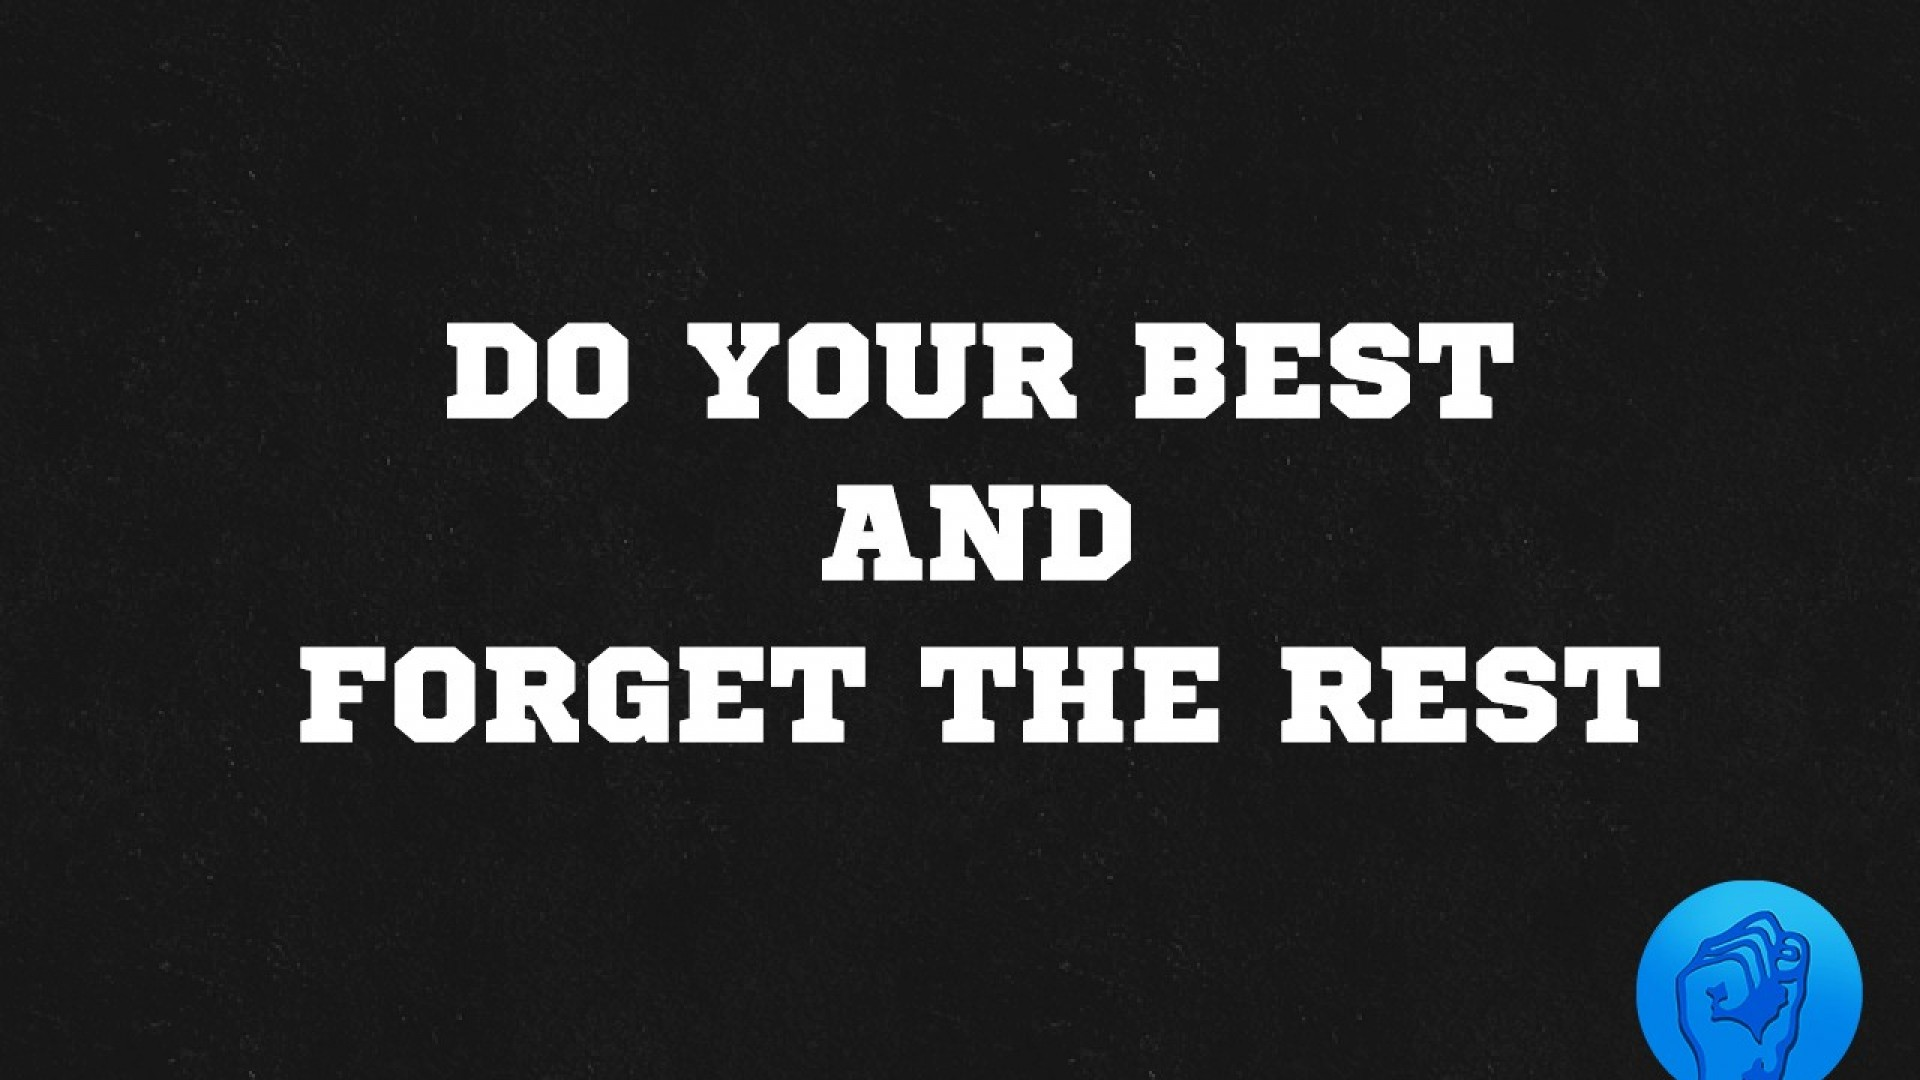 GYM MOTIVATIONAL QUOTES WALLPAPERS image quotes at BuzzQuotescom 1920x1080